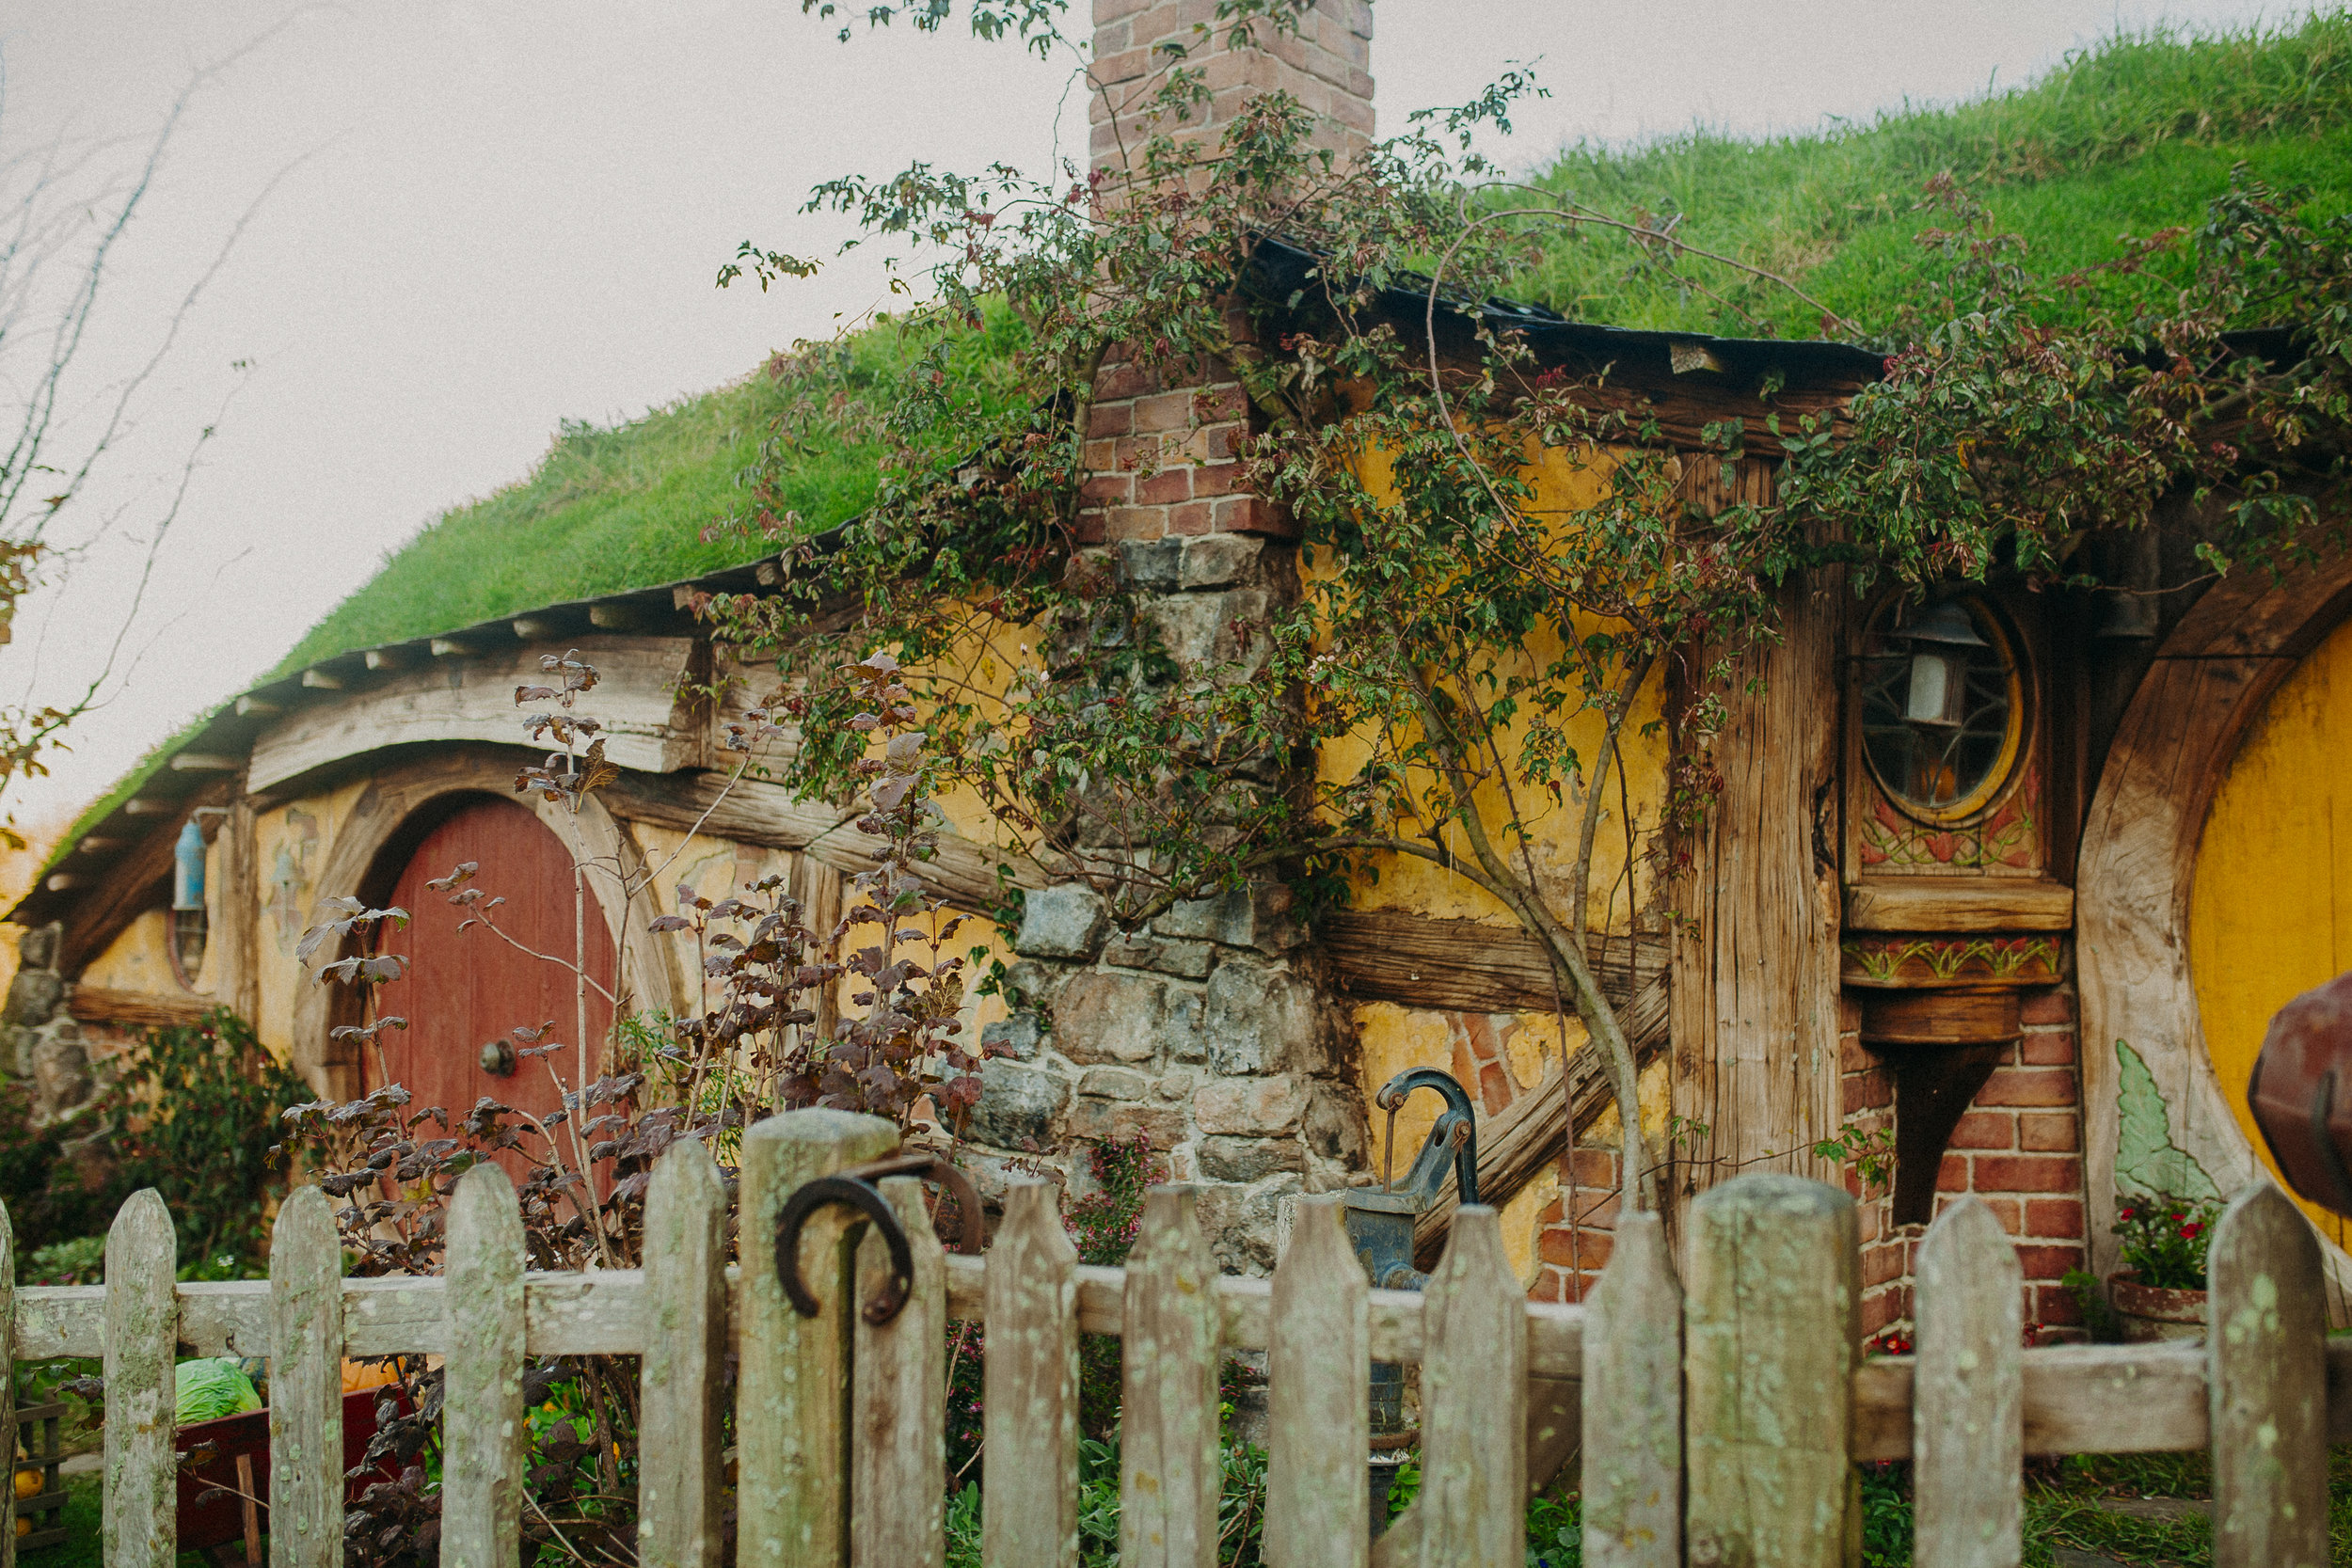 hobbiton-new-zealand-lord-of-the-rings-tour-12.jpg